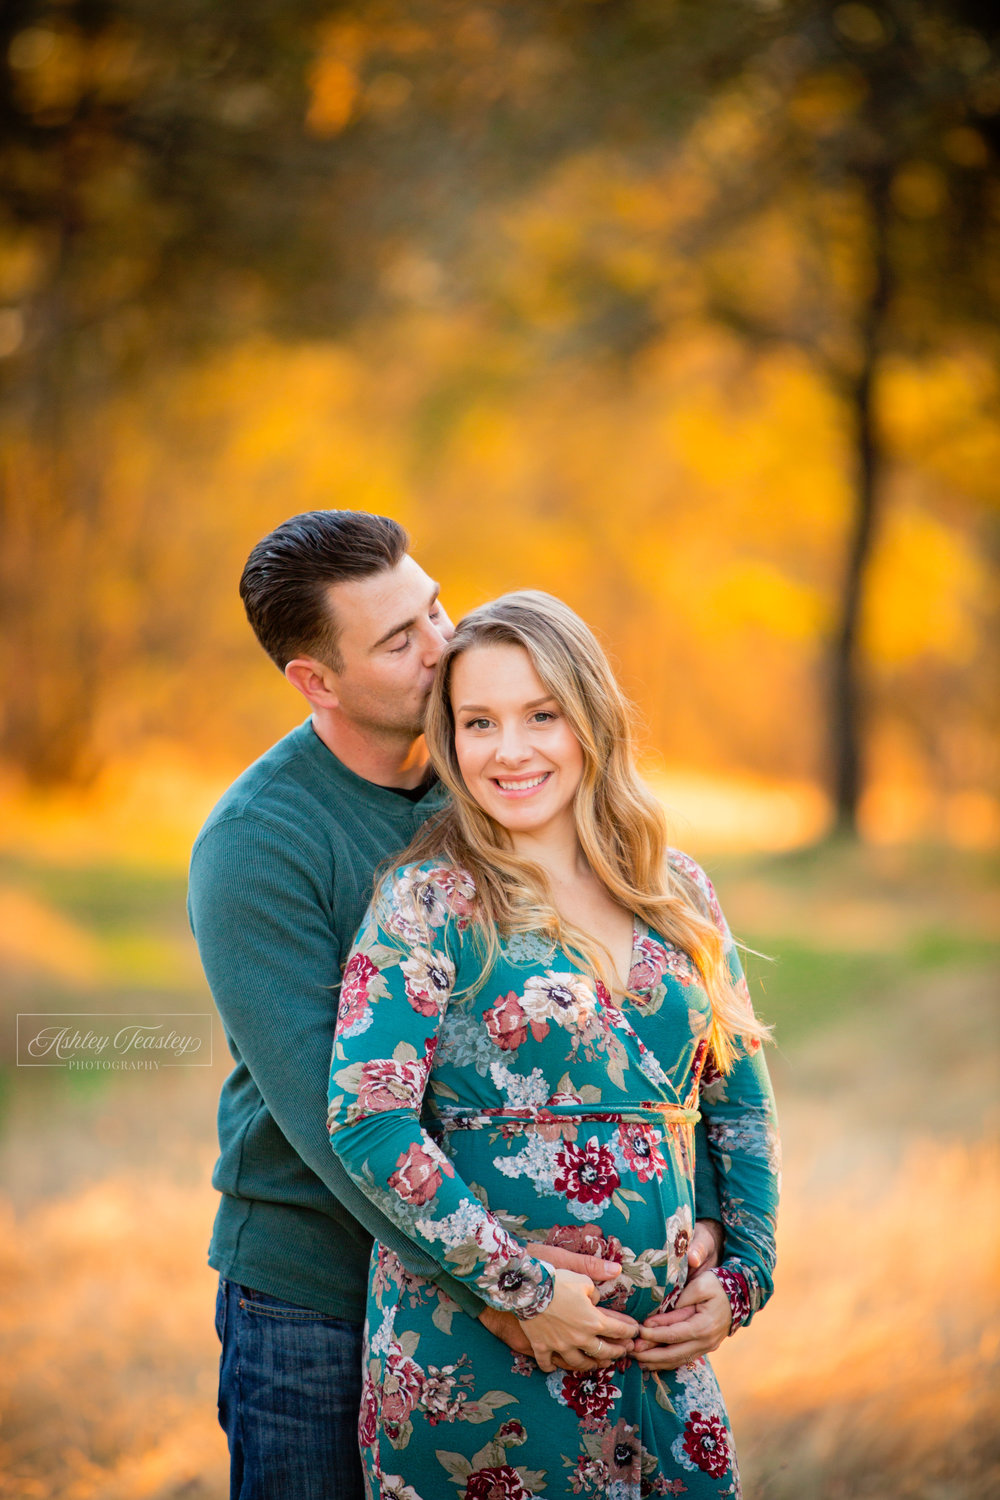 Family Session - Maternity Session - Sacramento Wedding Photographer - Ashley Teasley Photography-86.jpg